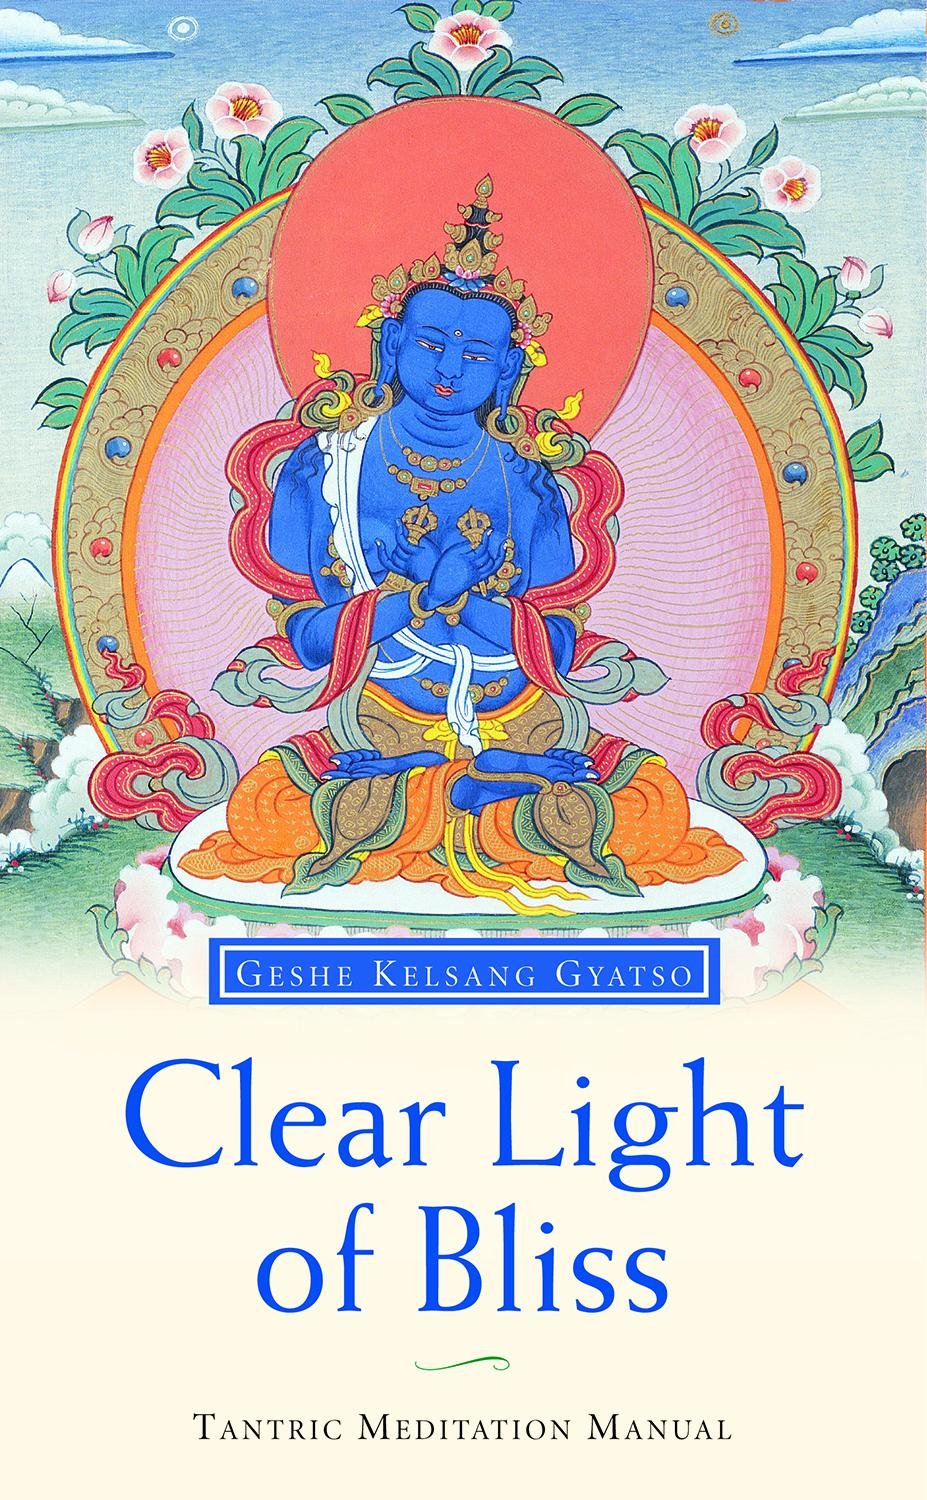 in buddhism the state of perfect bliss